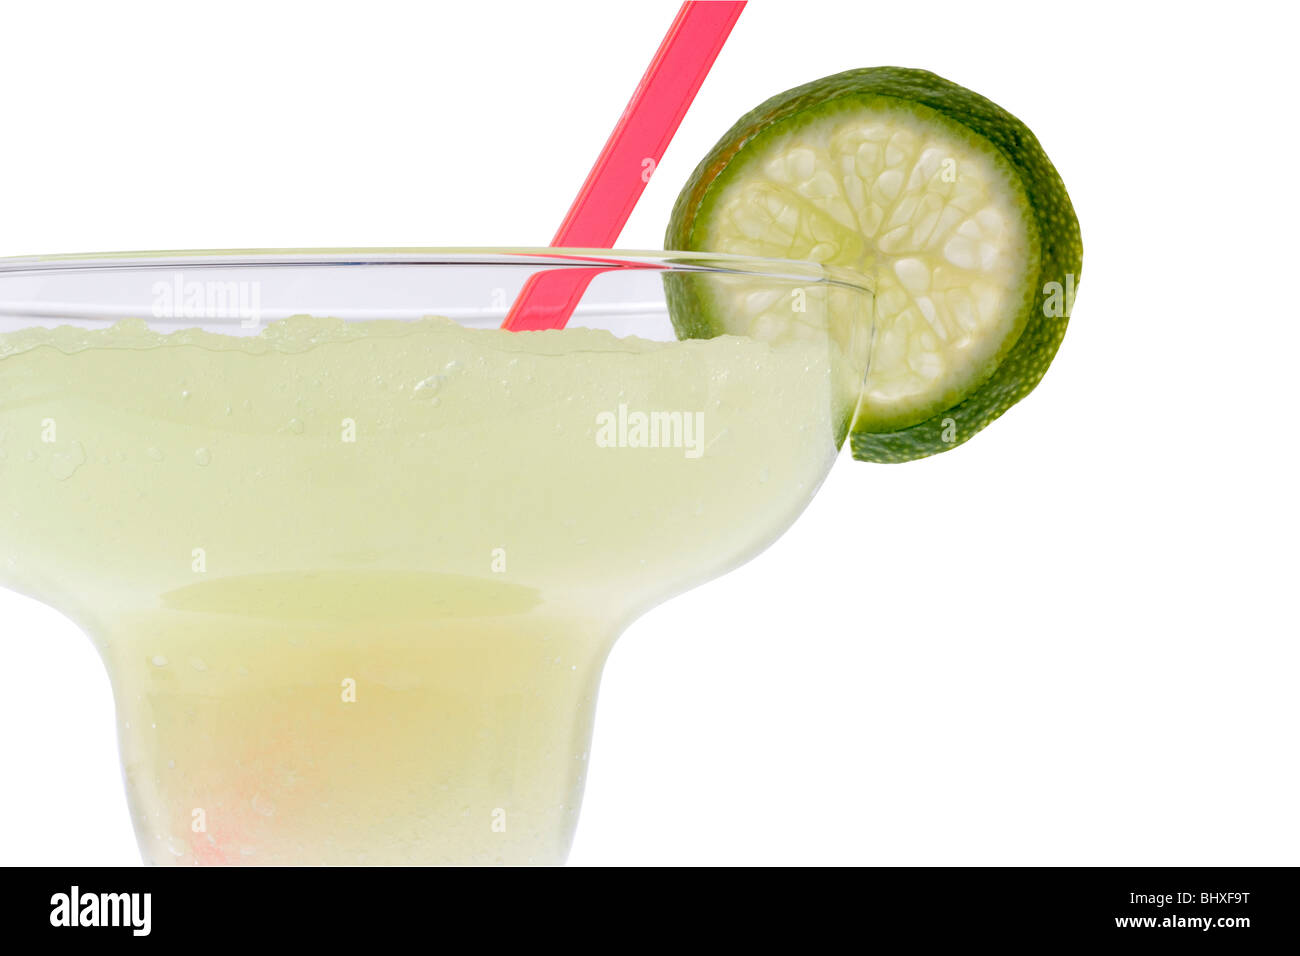 Margarita mixed drink with lime slice garnish on white background with clipping path - Stock Image